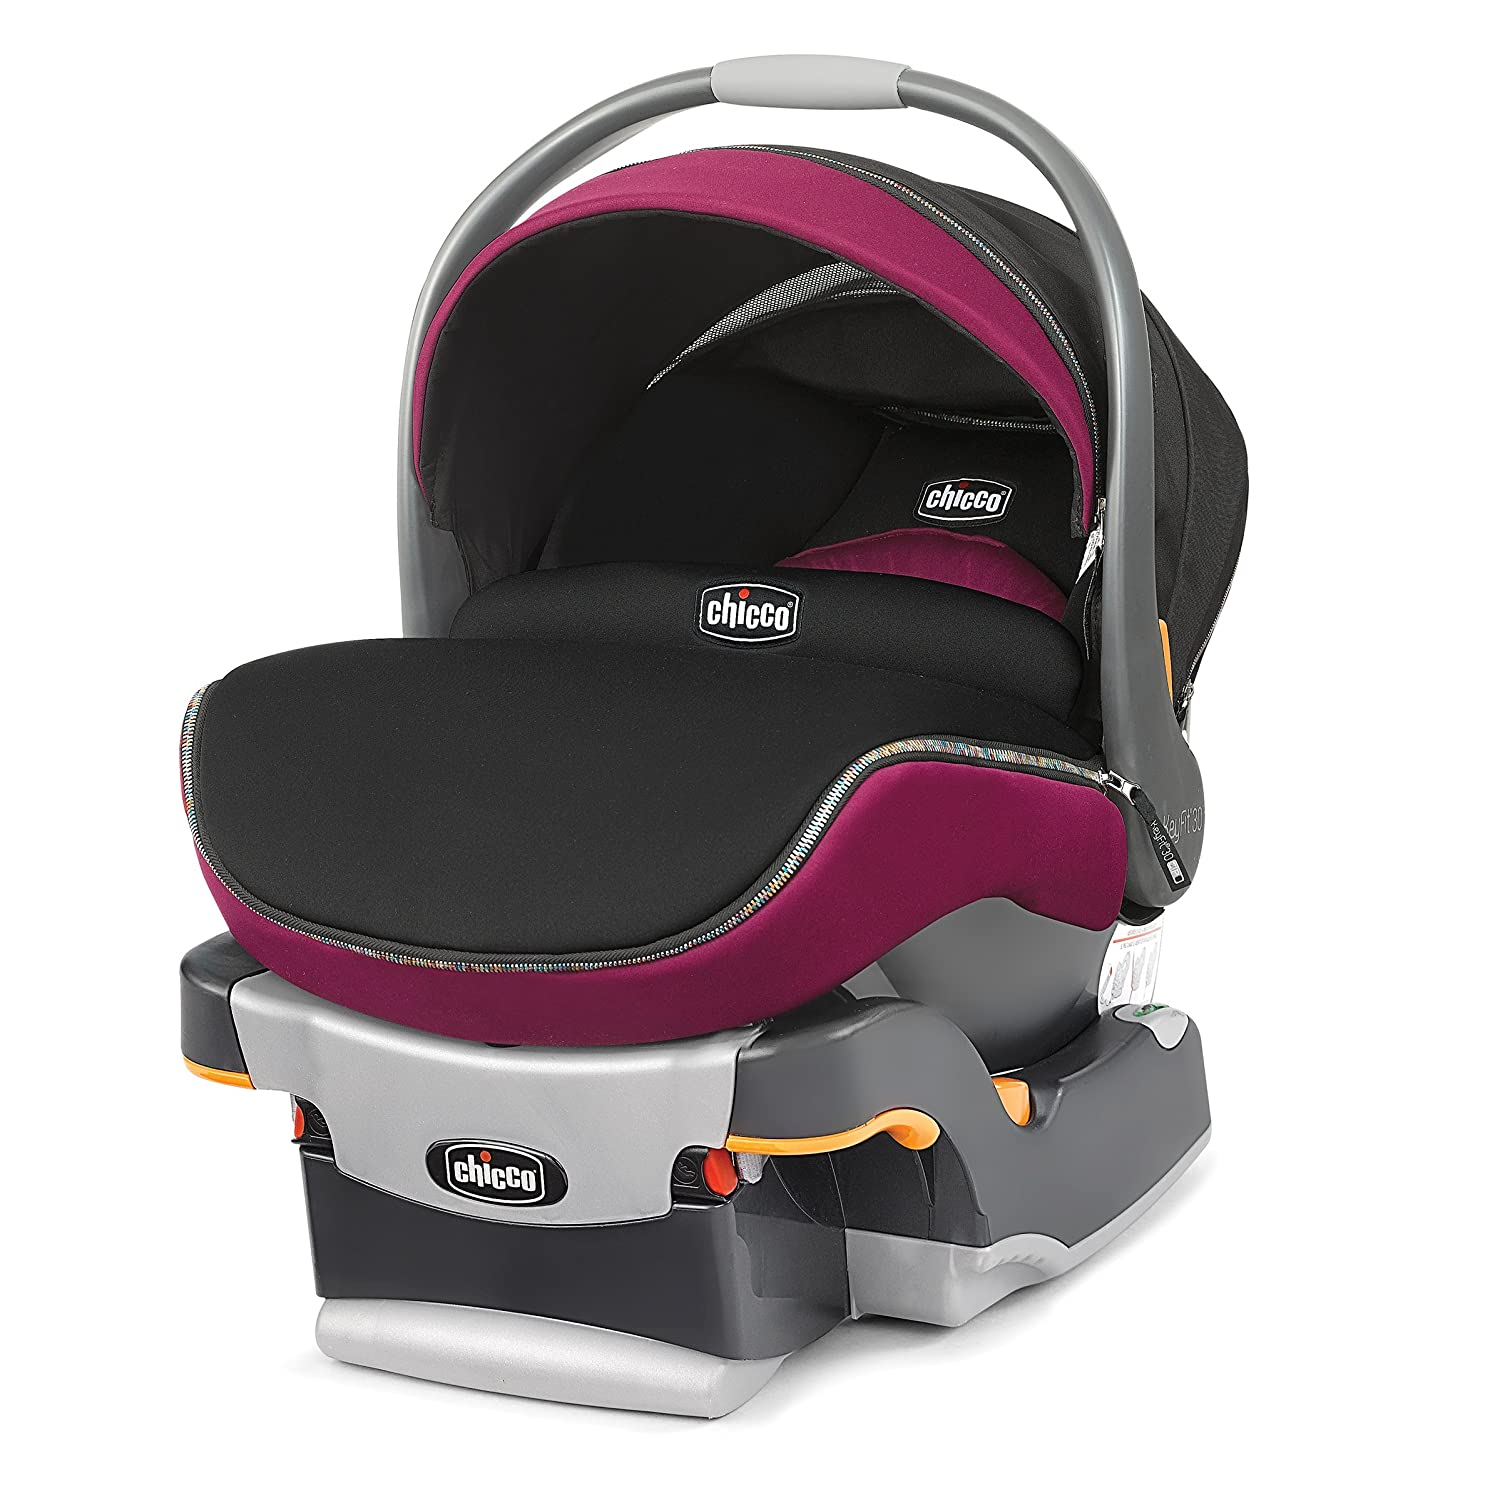 Amazon.com : Chicco Key Fit 30 Zip Infant Car Seat, Fuchsia : Baby